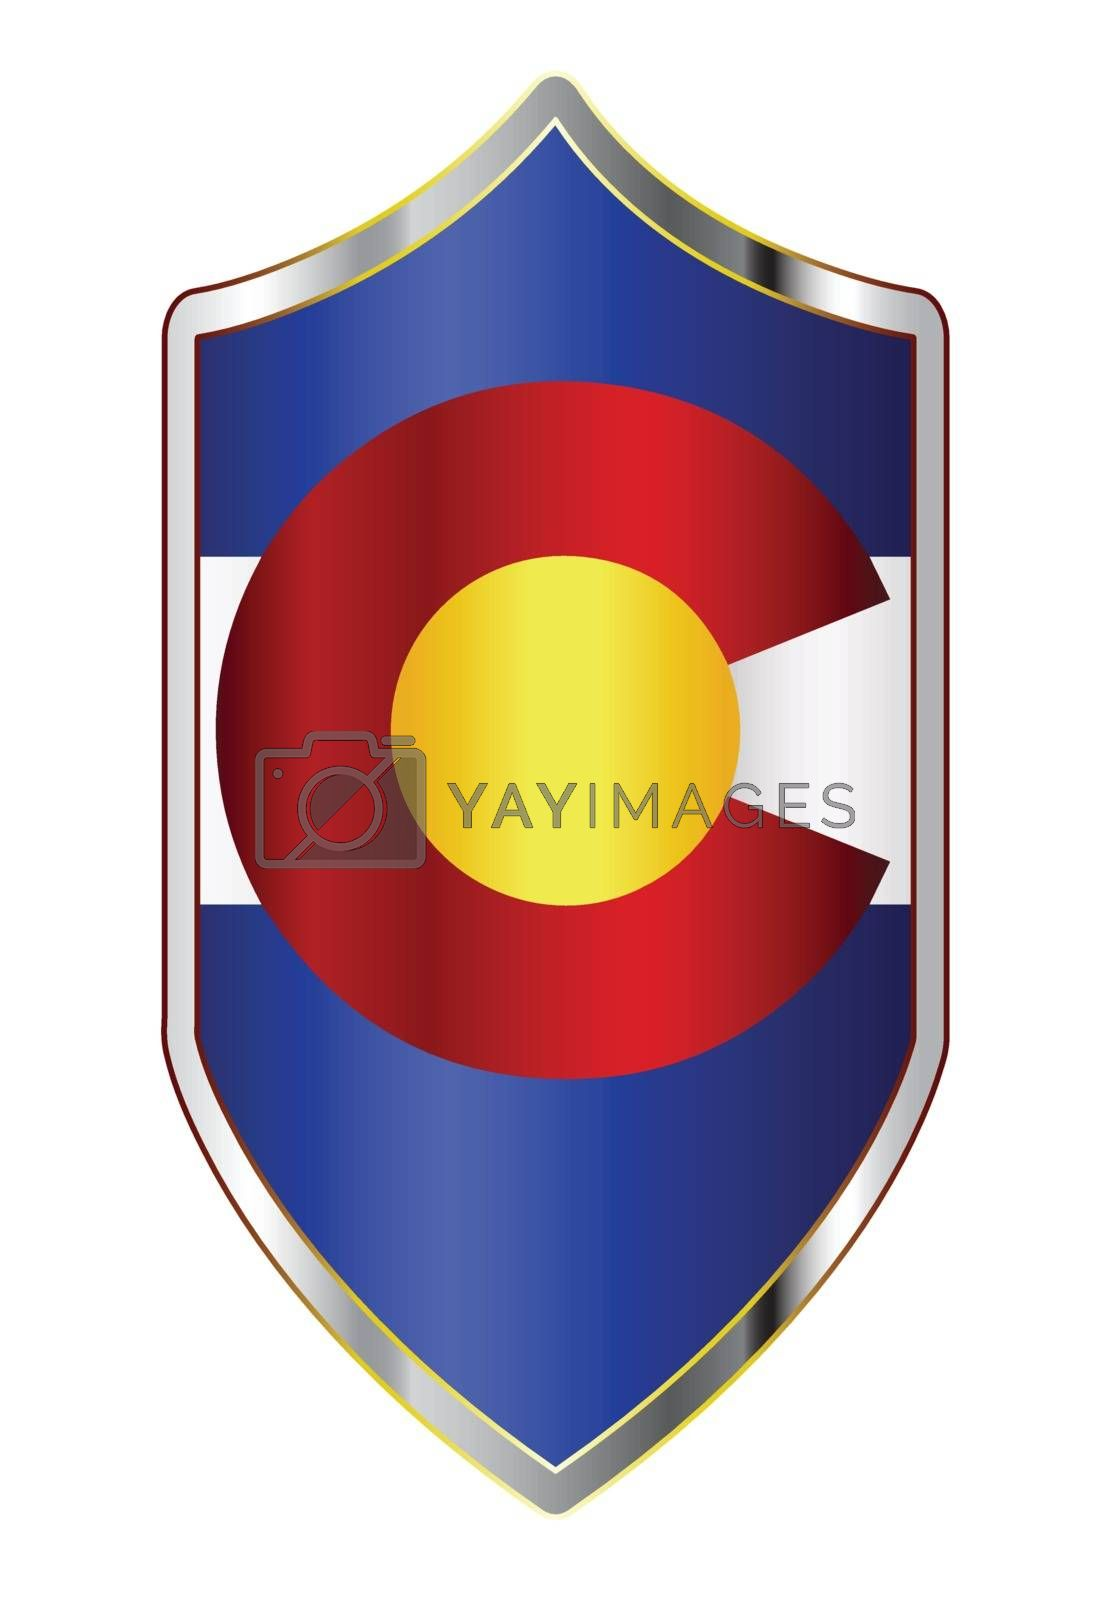 A typical crusader type shield with the state flag of Colorado all isolated on a white background